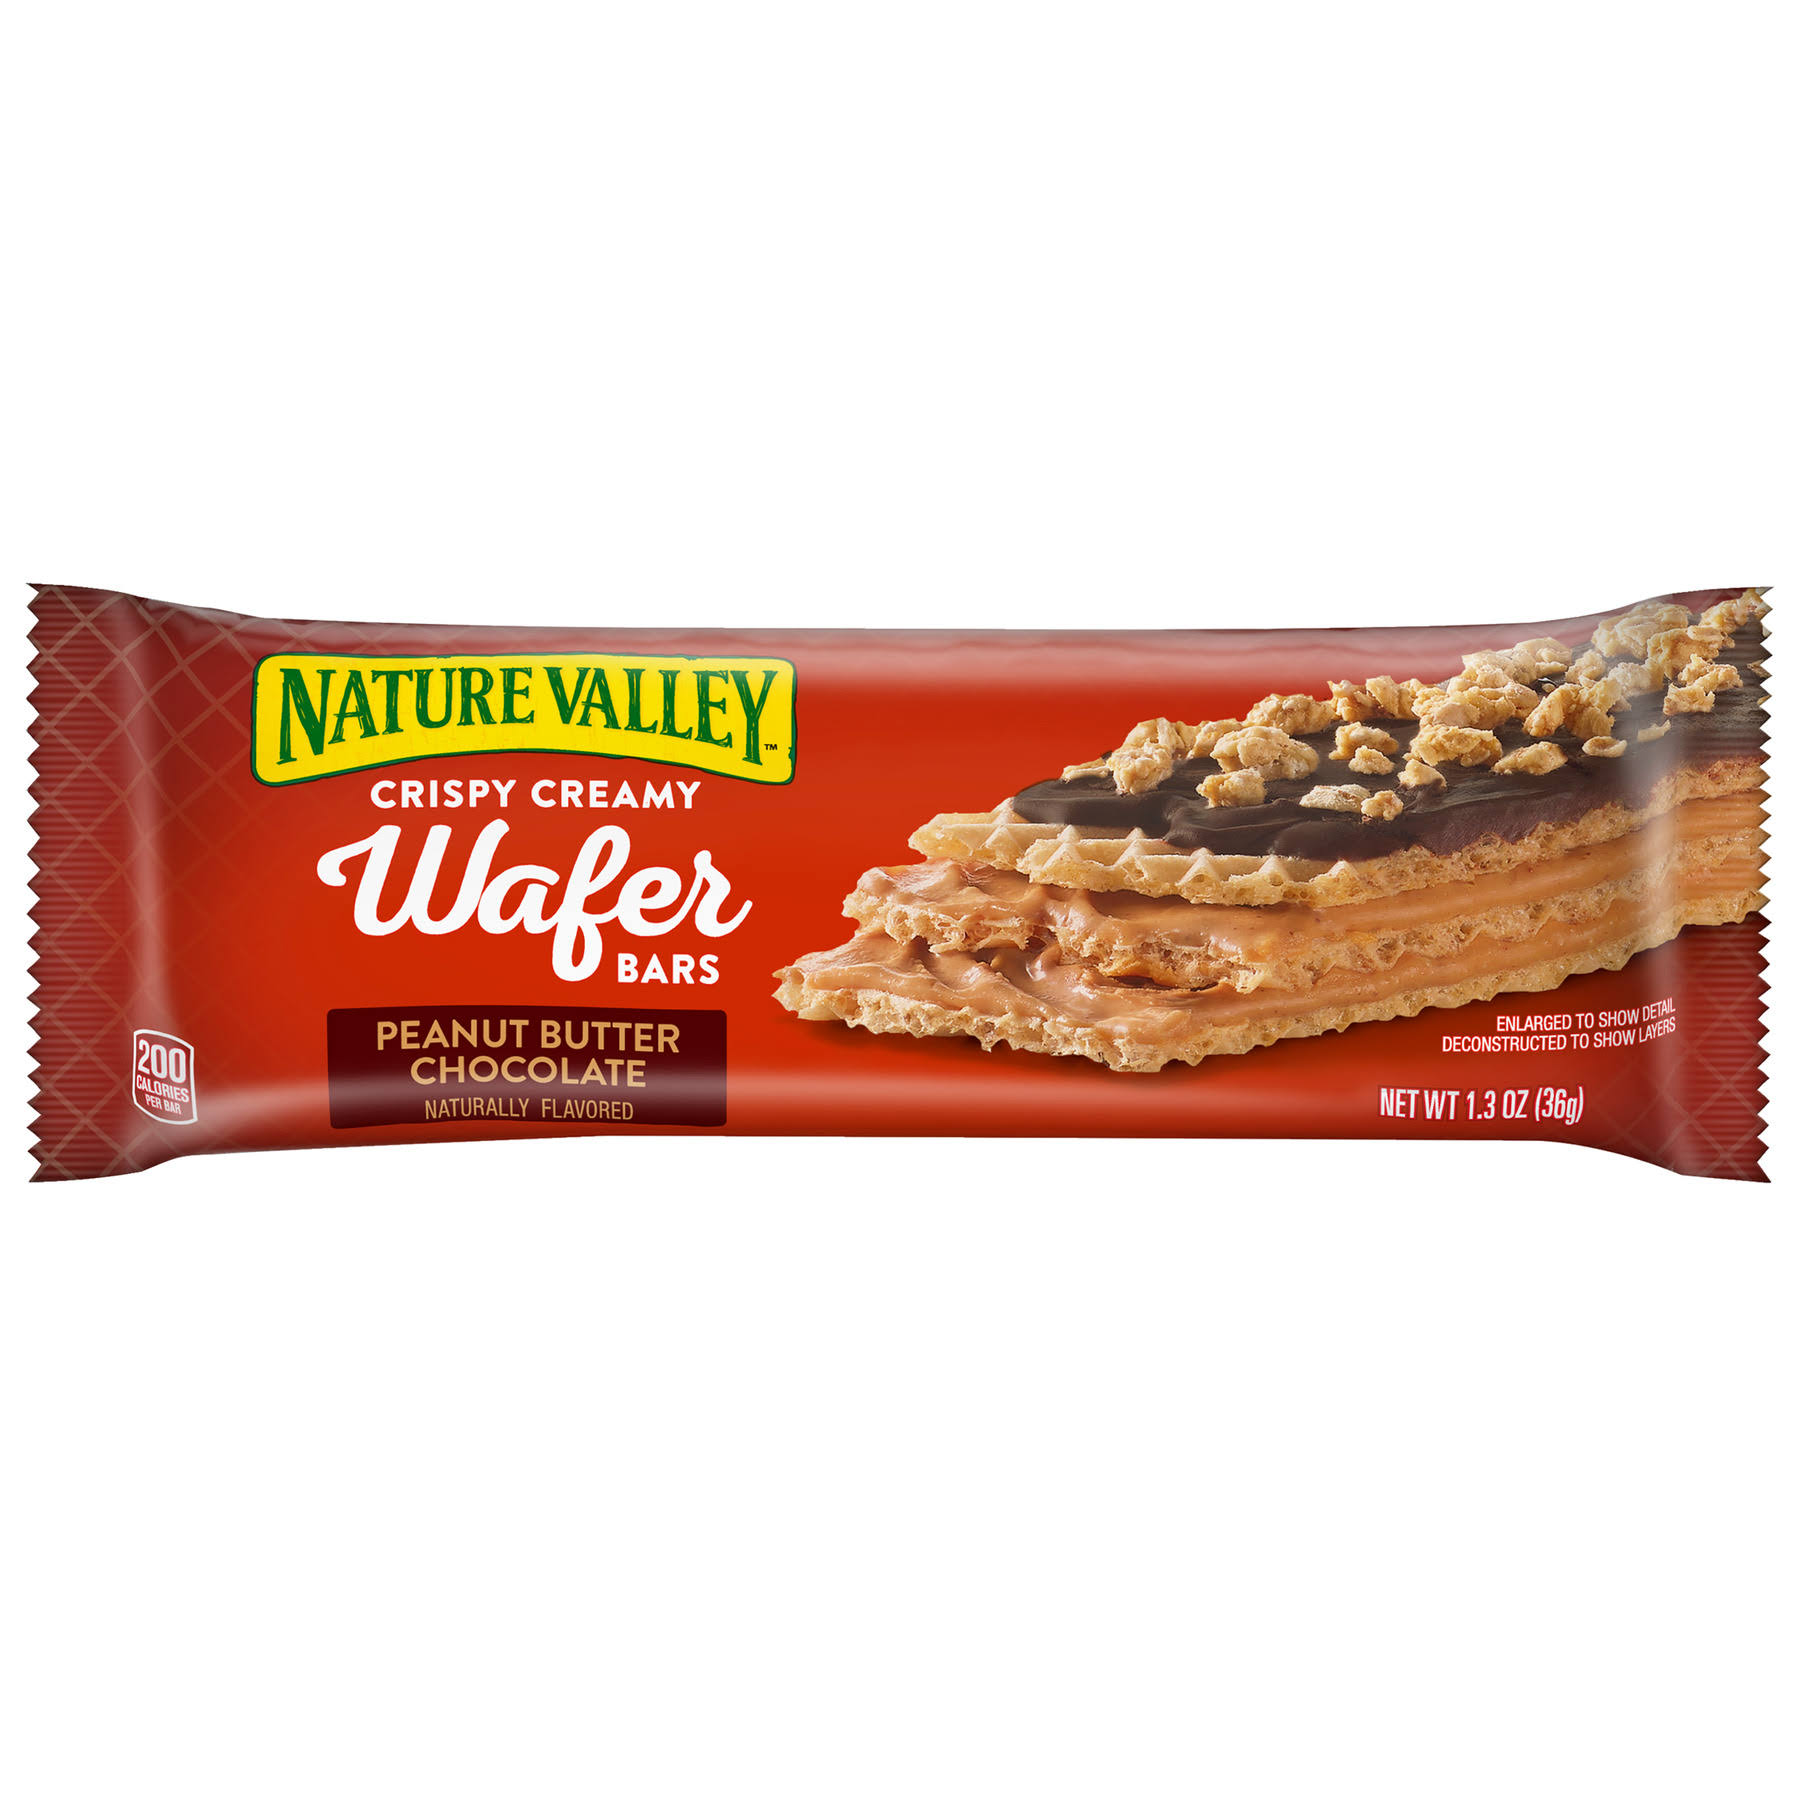 Nature Valley Wafer Bars, Peanut Butter Chocolate, Crispy Creamy - 1.3 oz